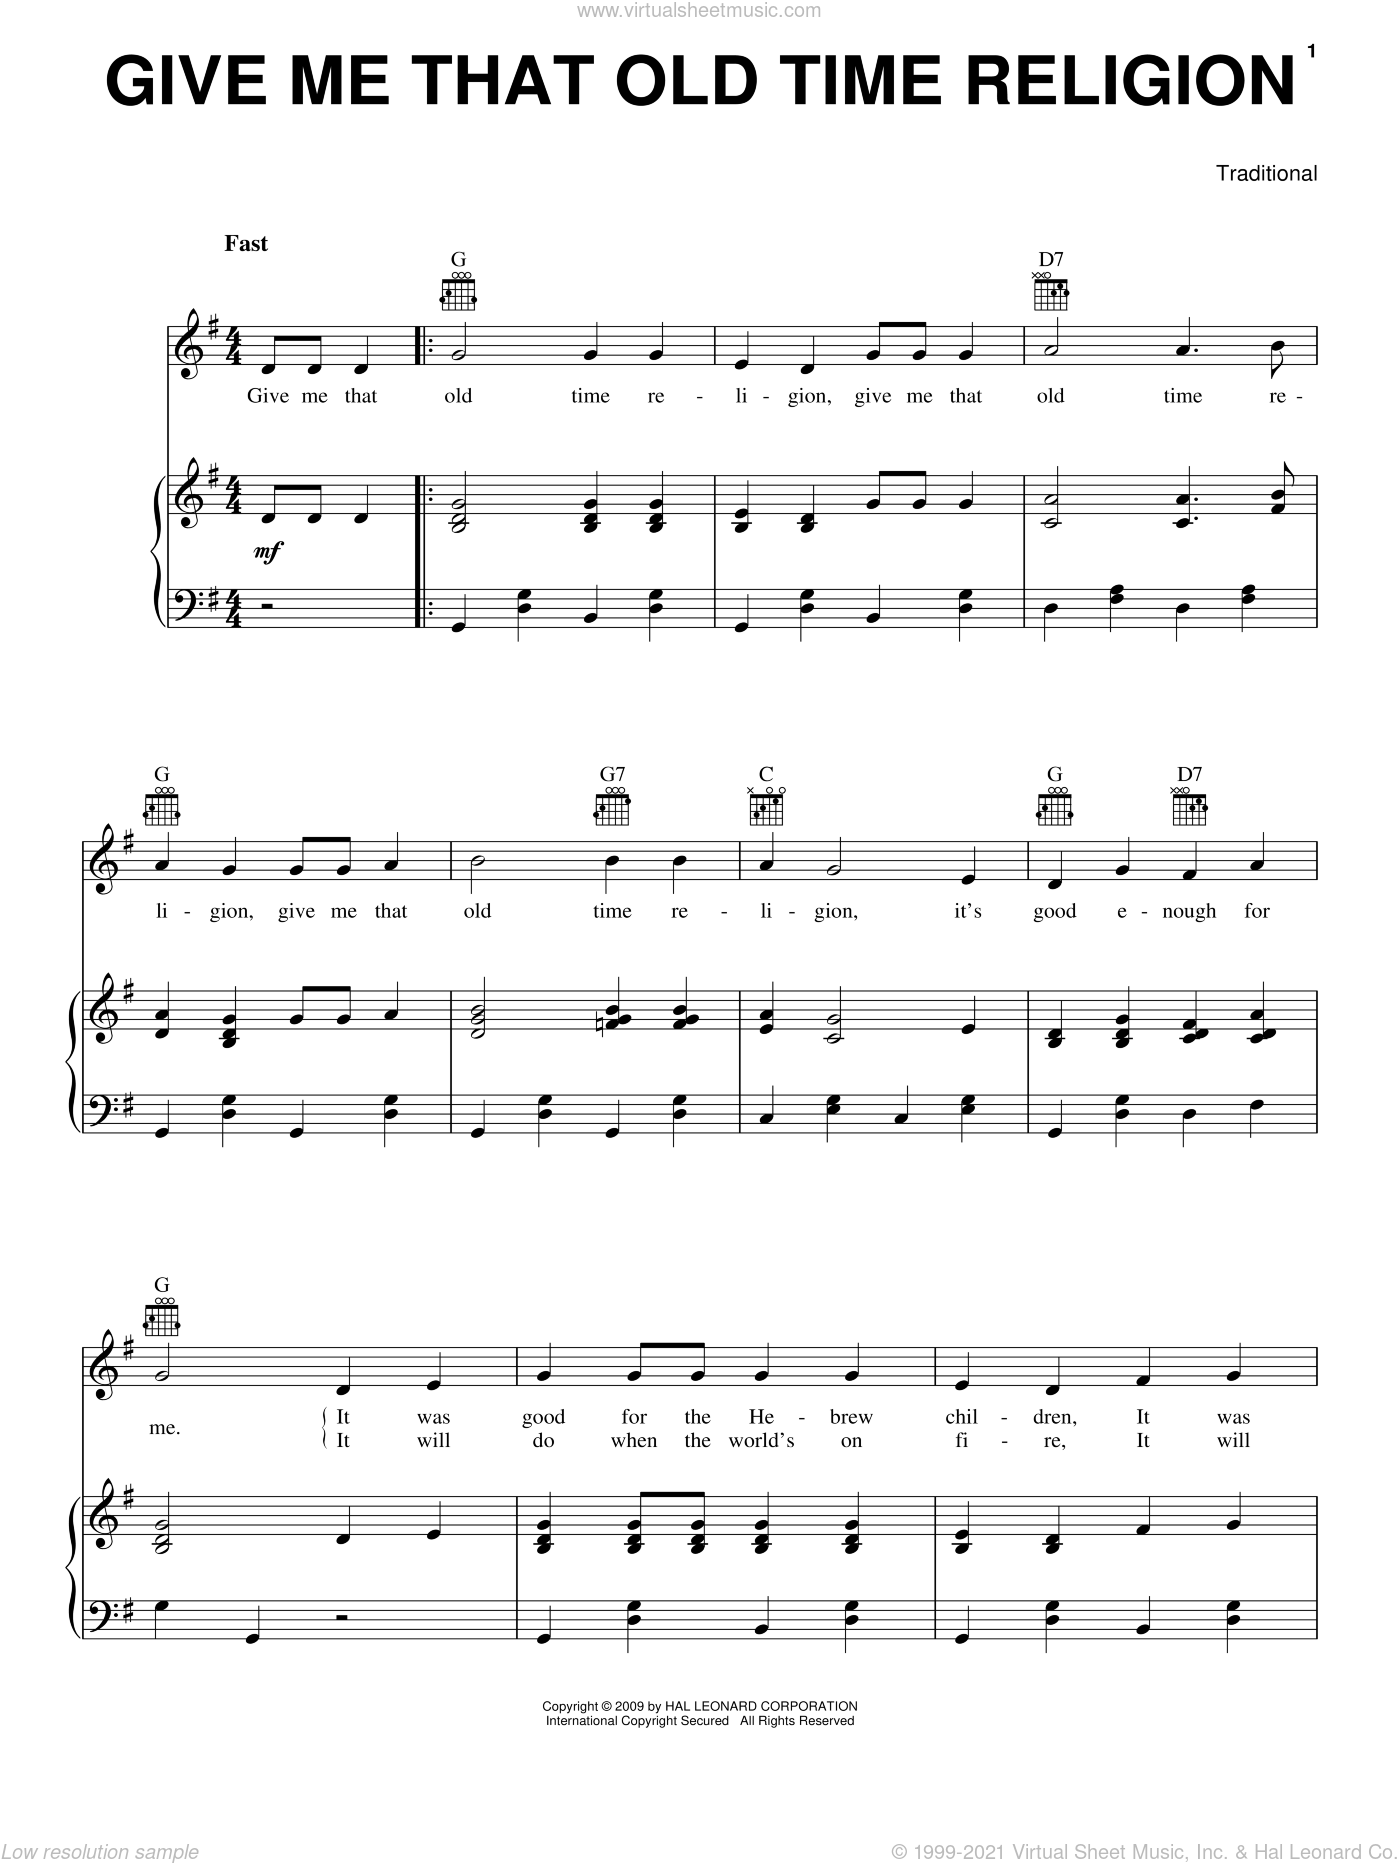 Give Me That Old Time Religion sheet music for voice, piano or guitar, intermediate skill level